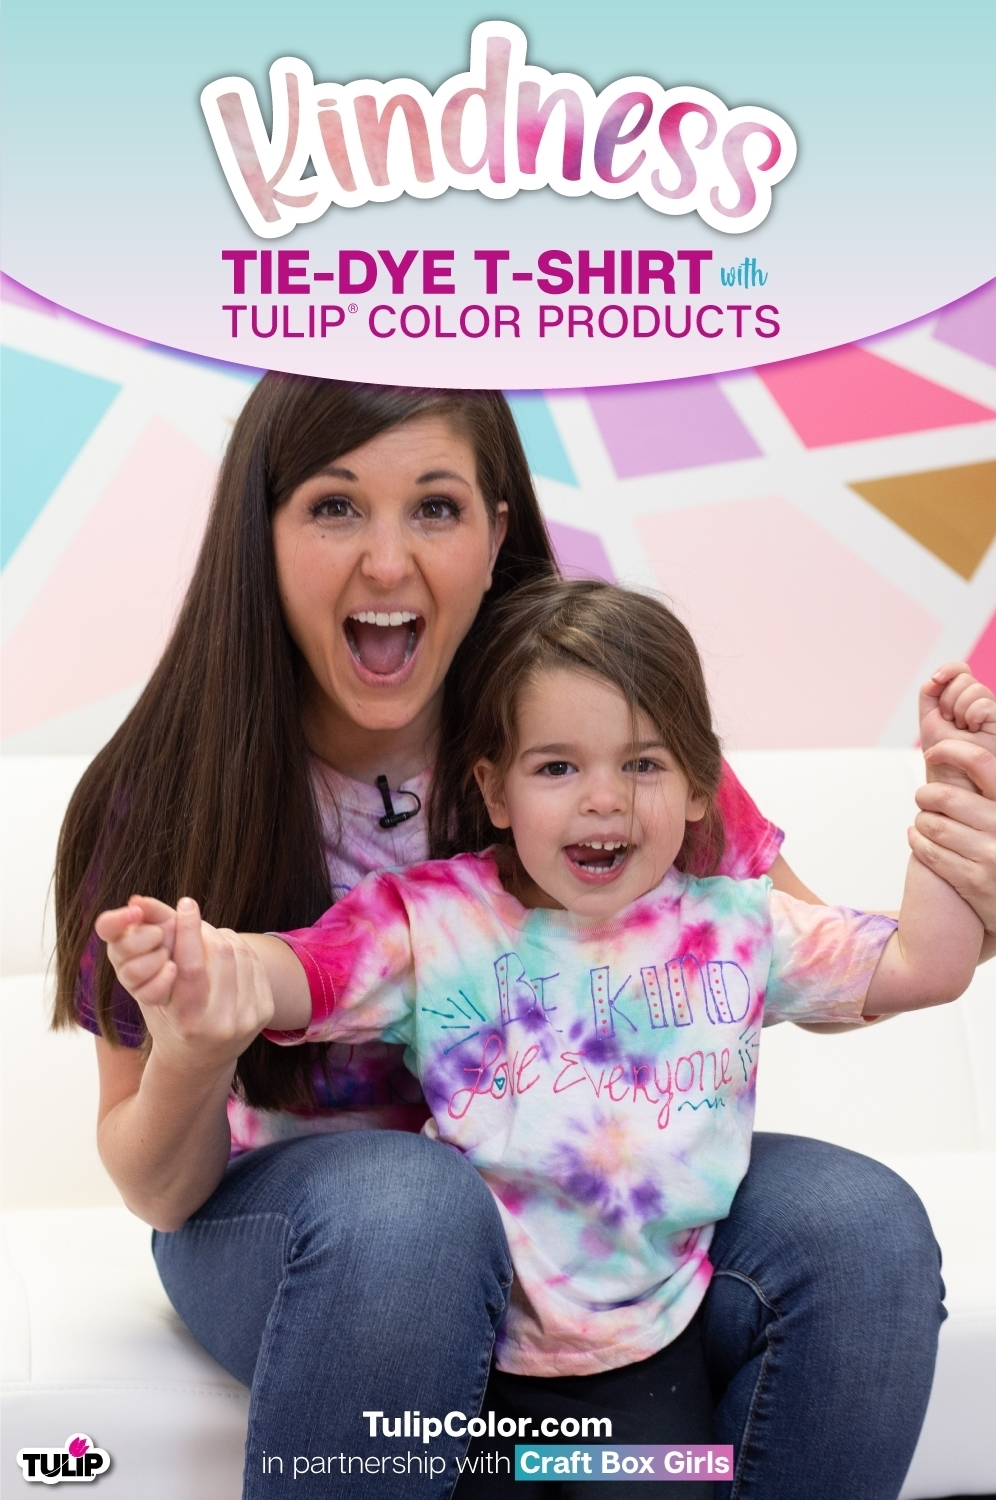 Mommy and Me Kindness Tie-Dye T-shirts